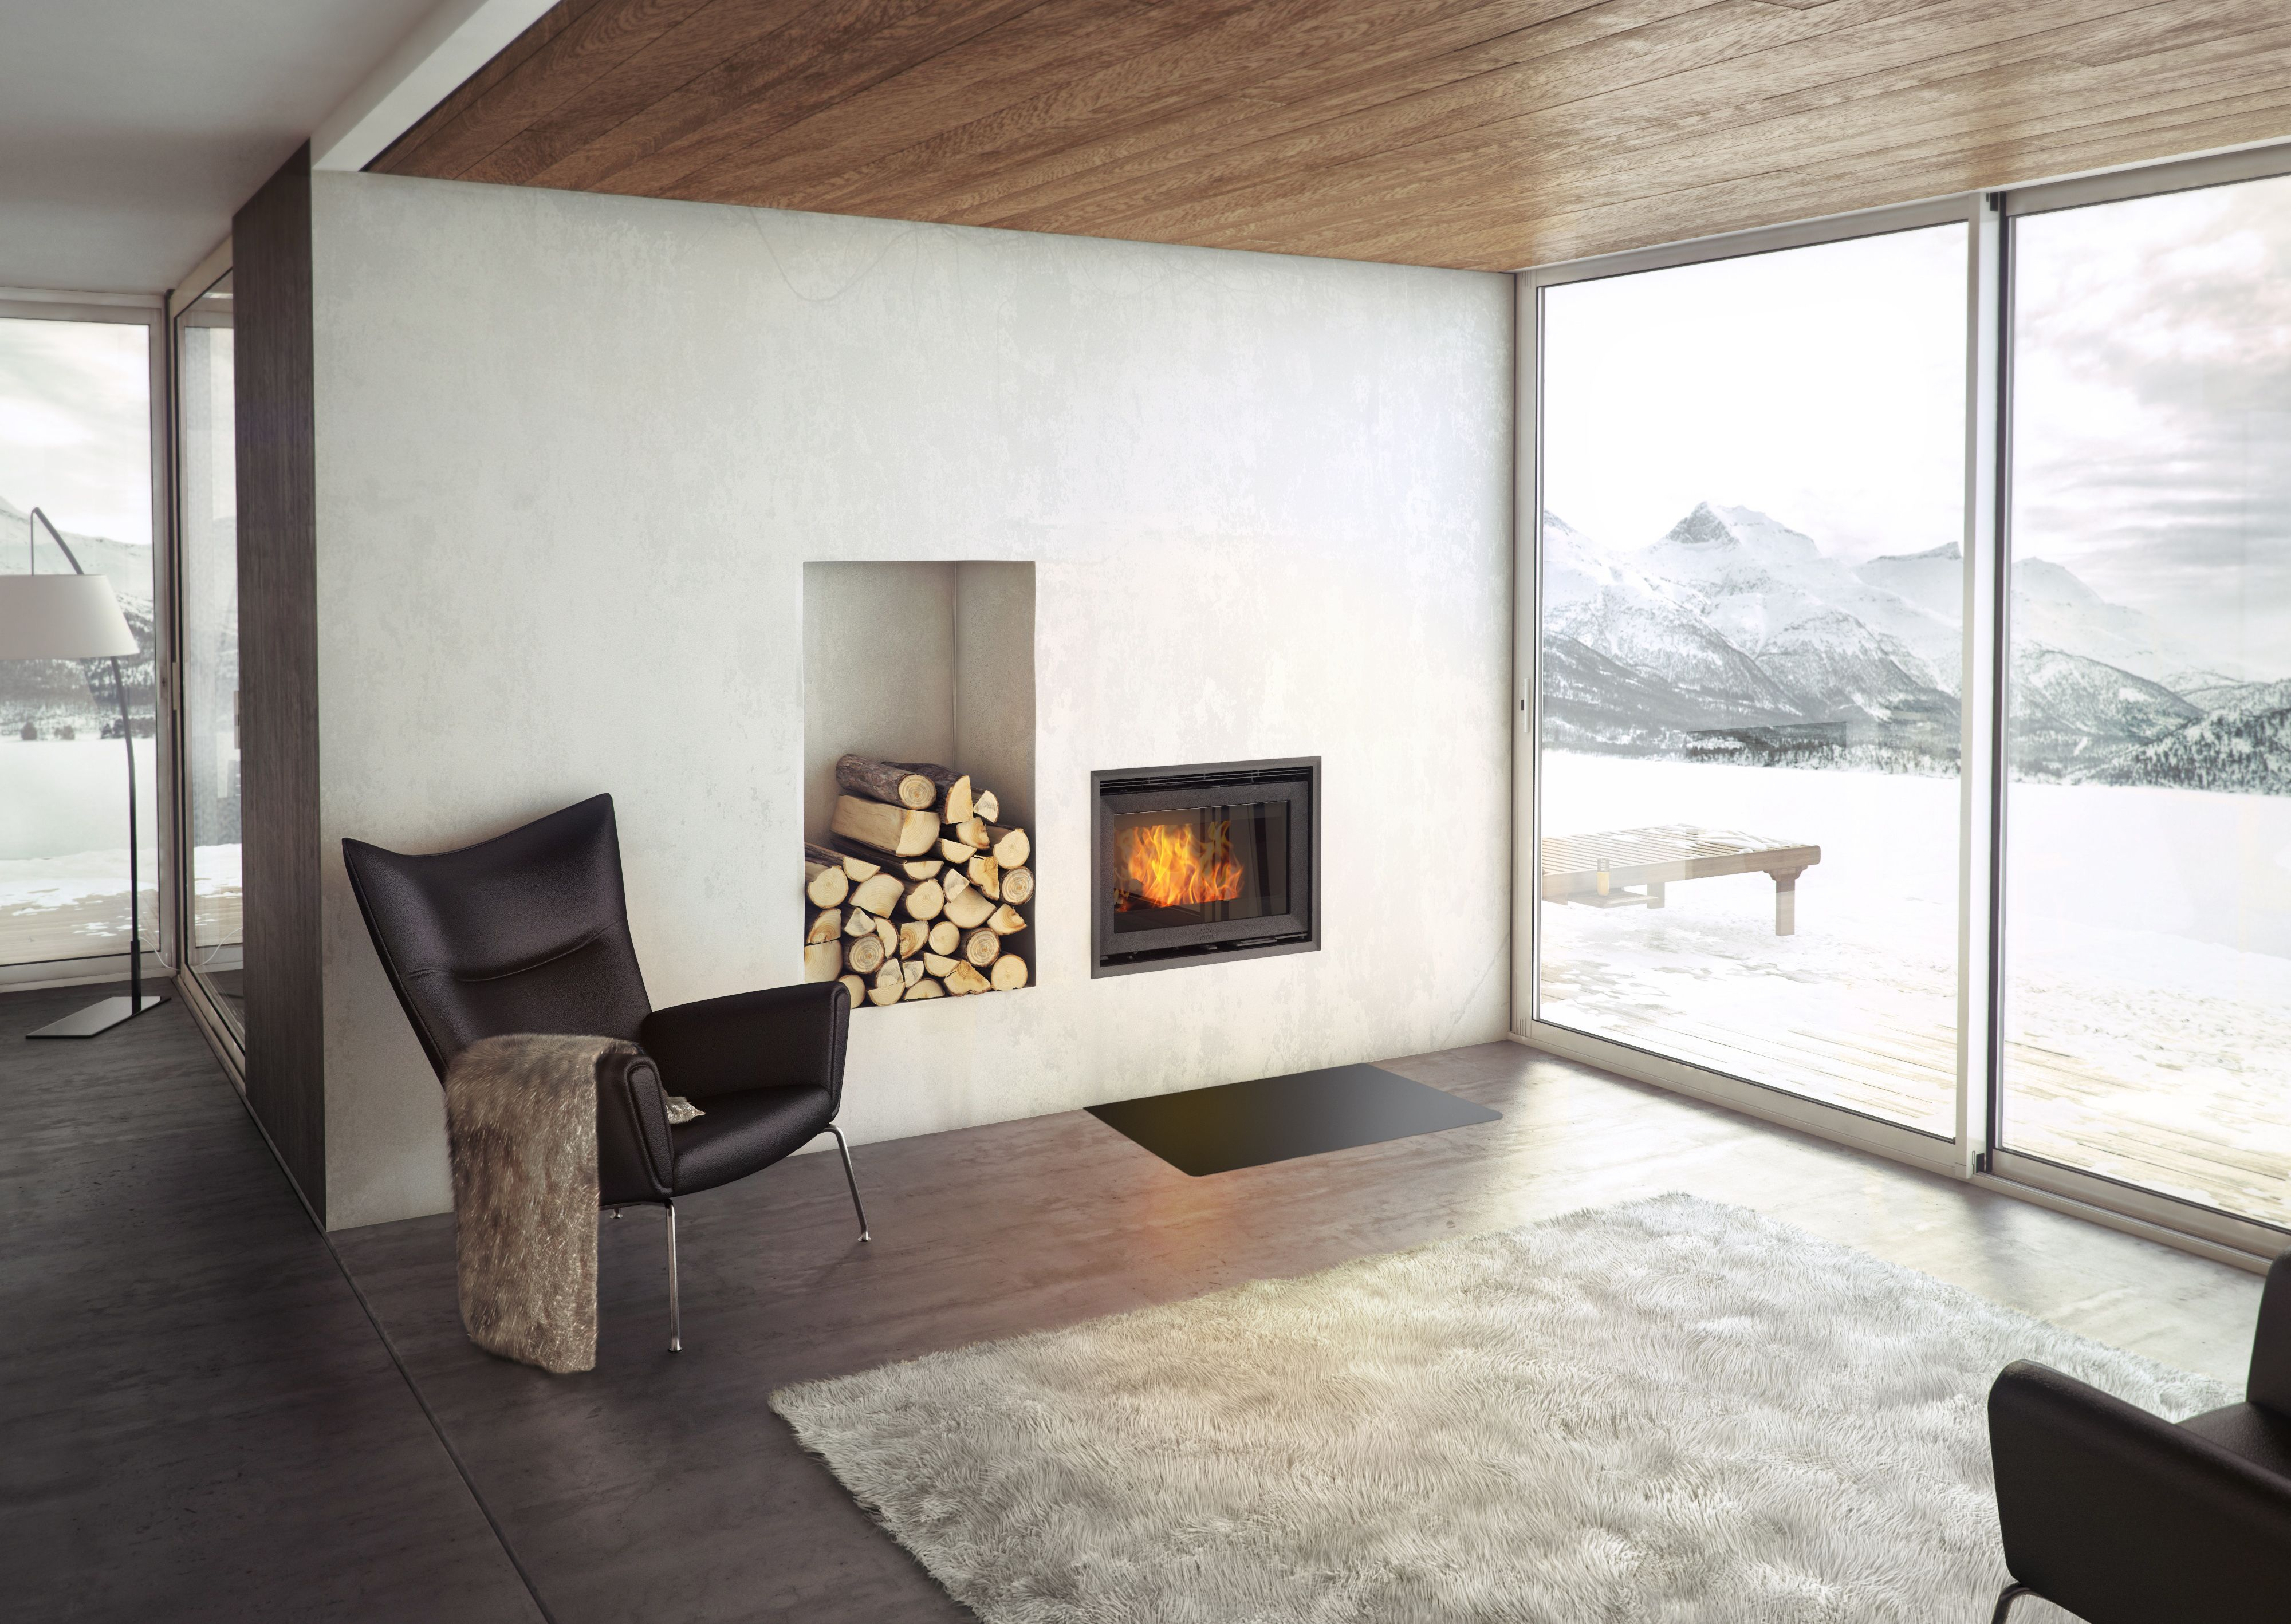 Jotul C24 Insert wood burning stove offers one of the worlds